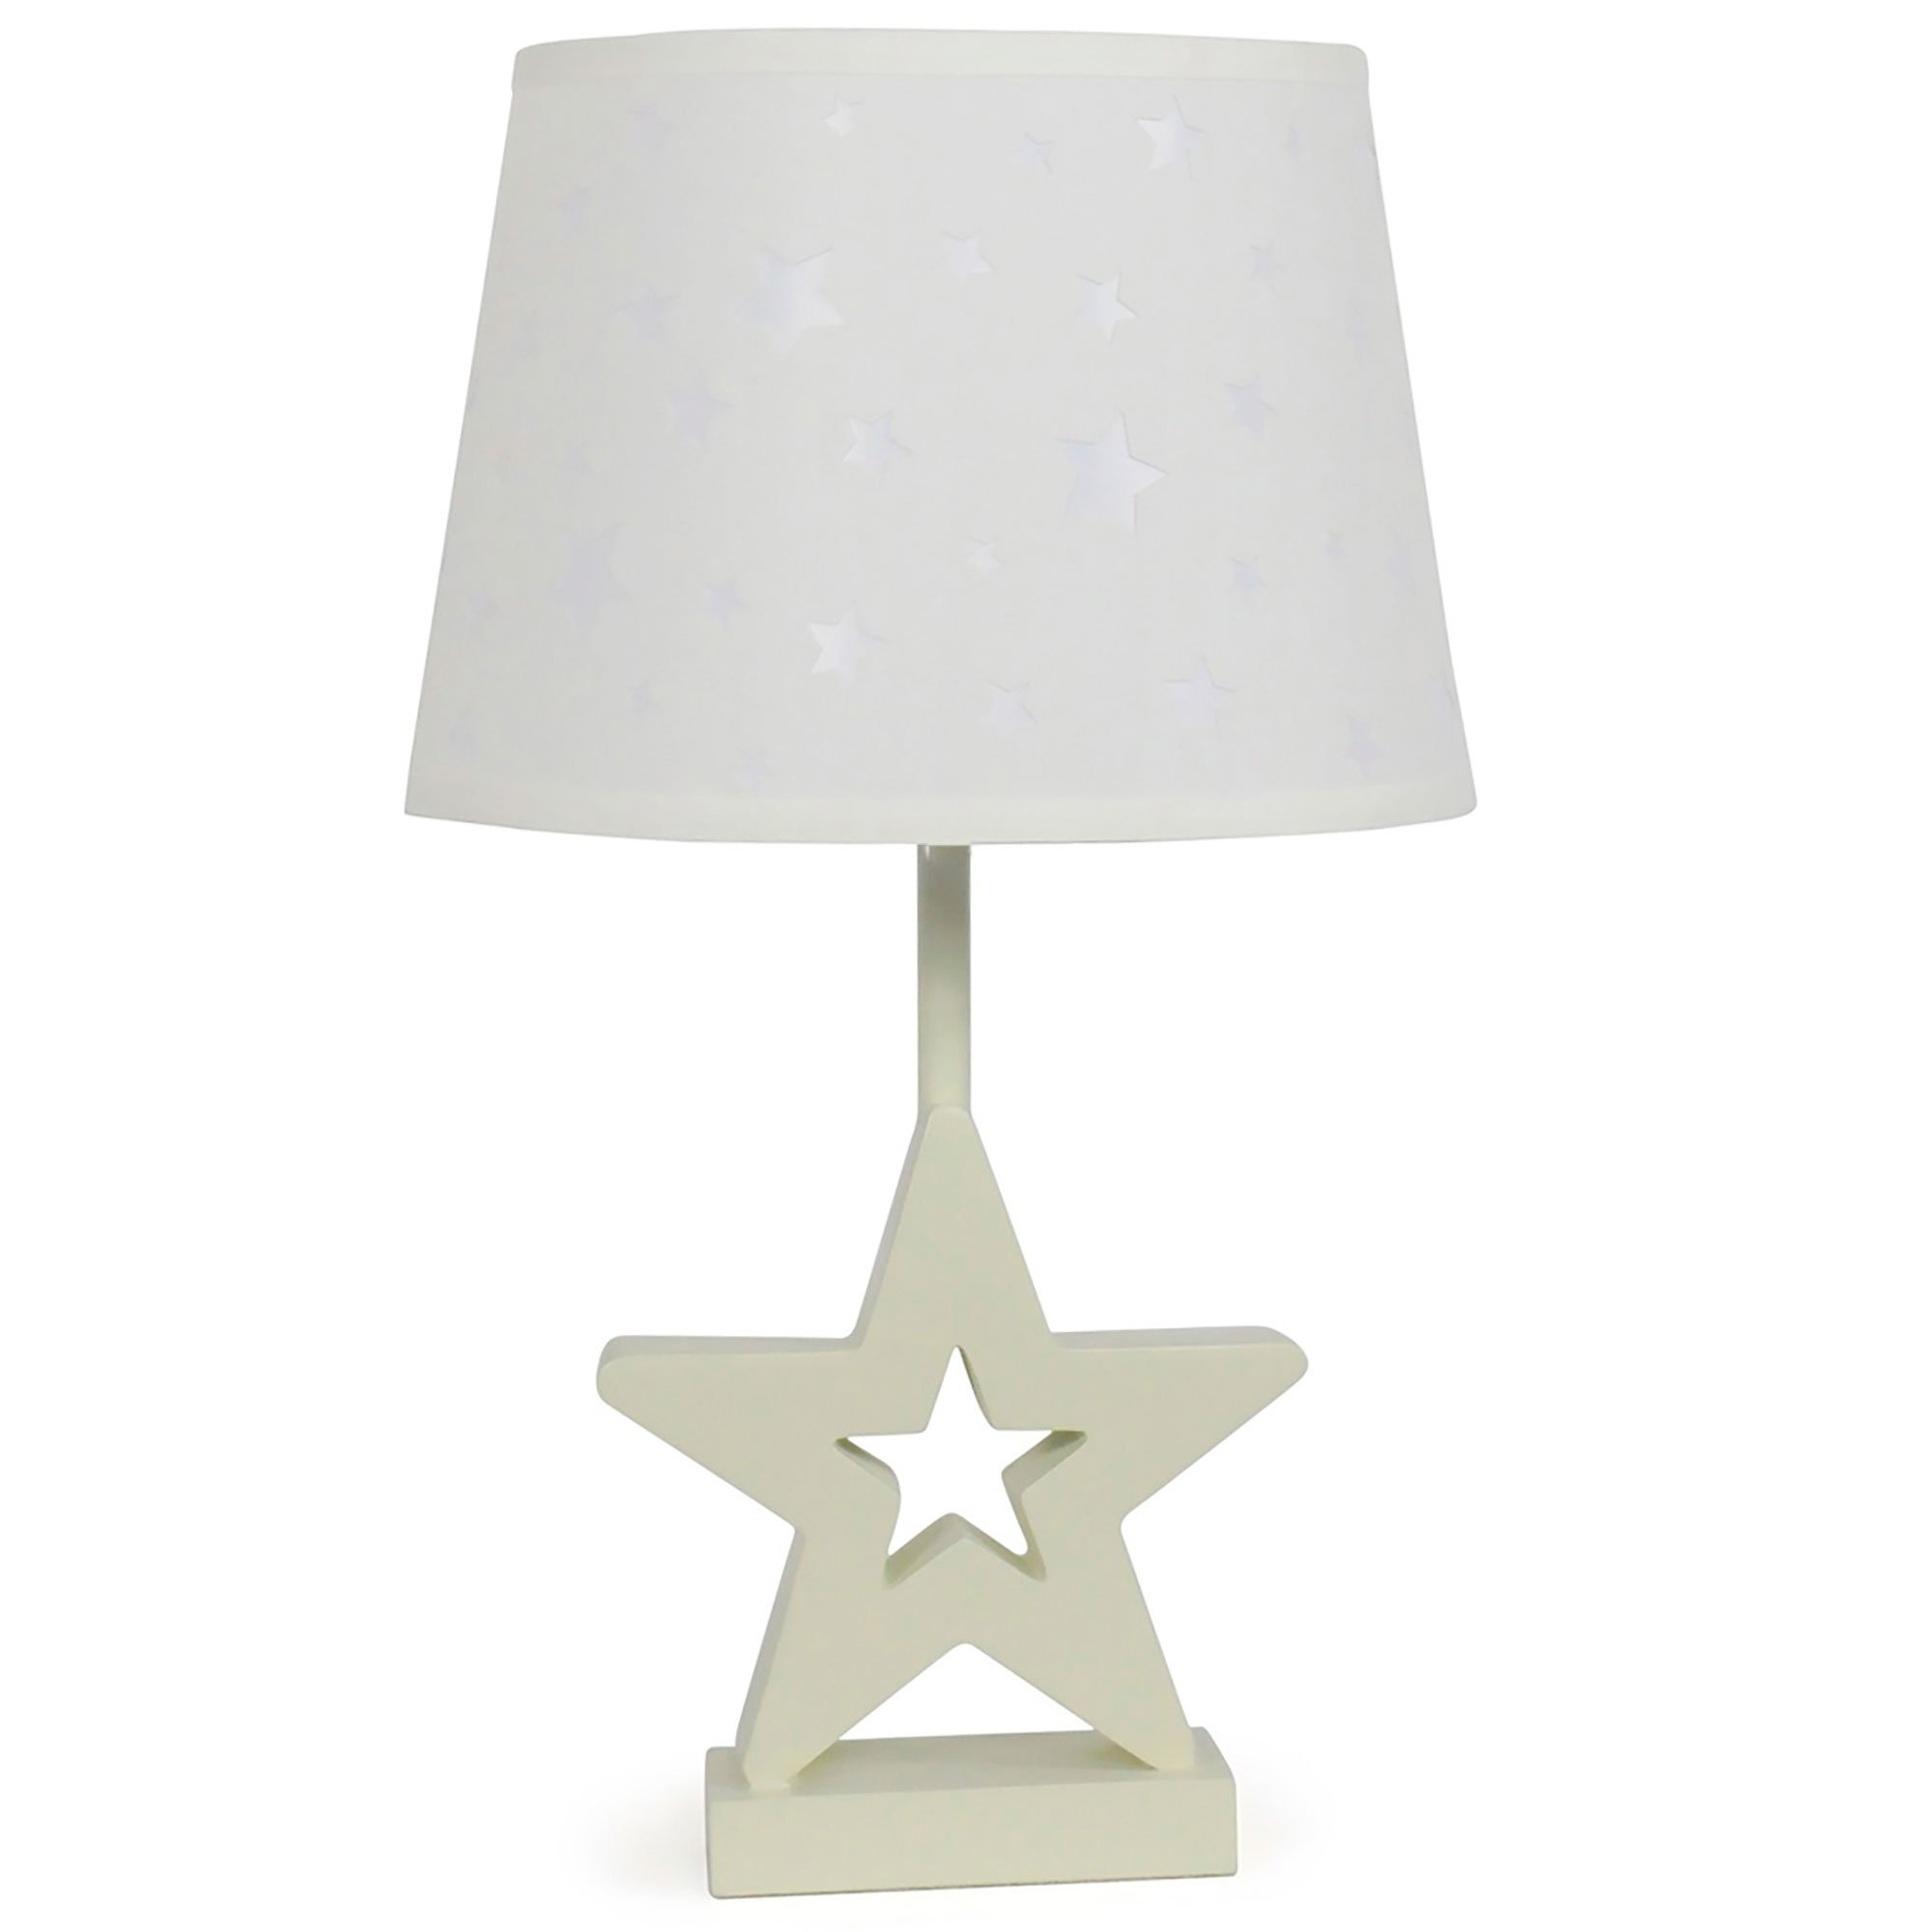 White Star Nursery Lamp Shade with White Star Base, CFL Bulb Included